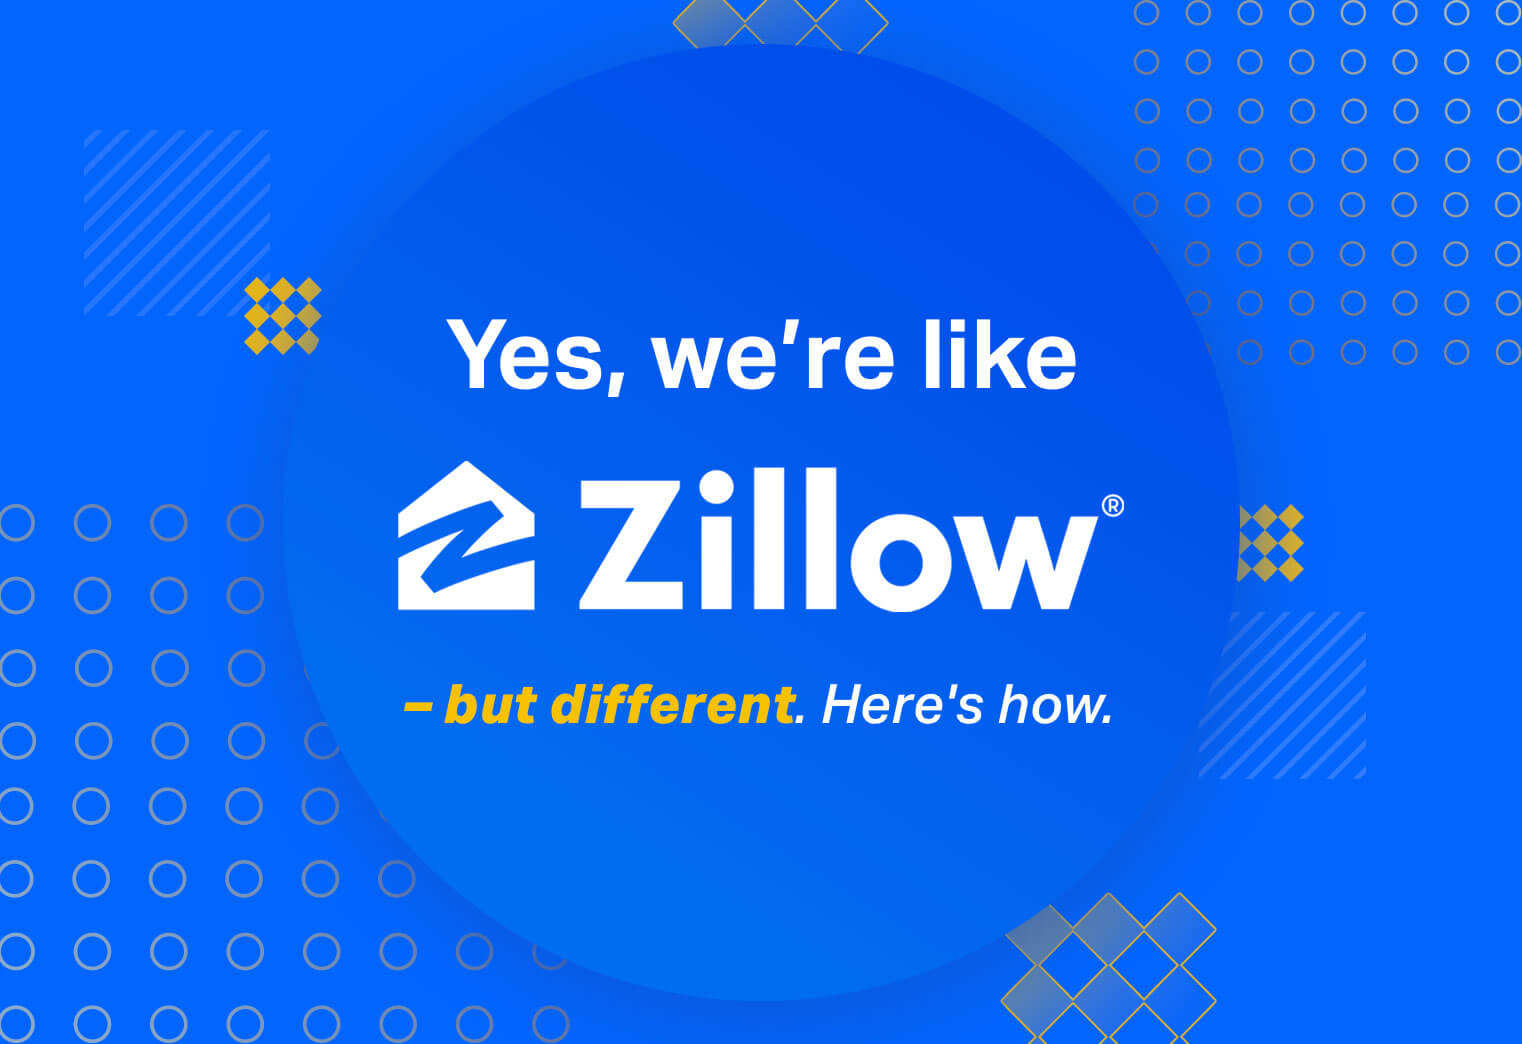 Yes, we're like Zillow - but different